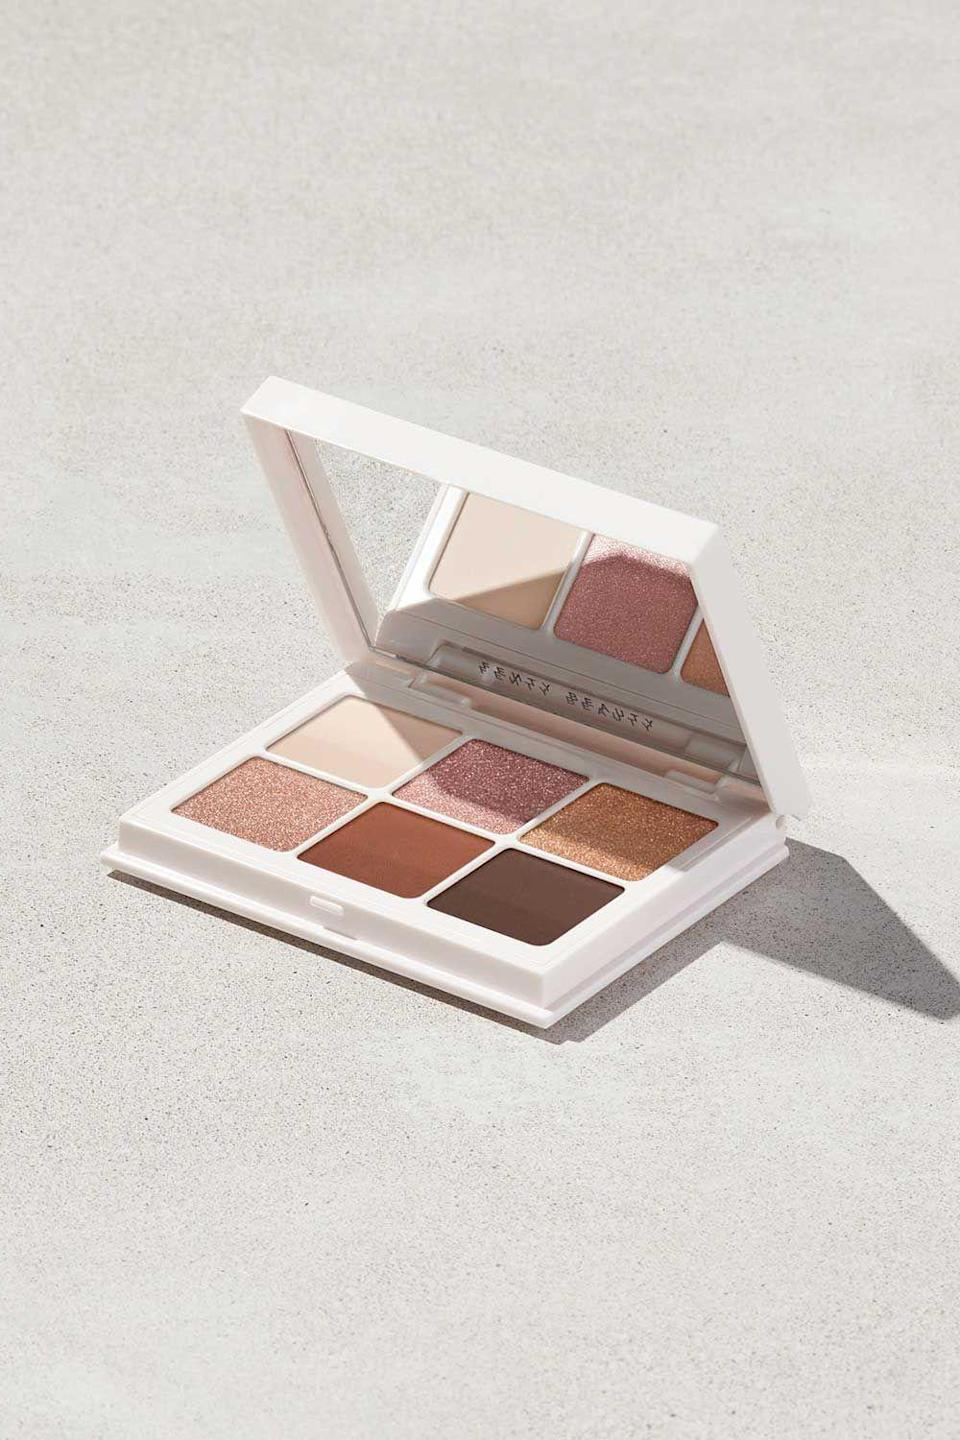 """<p><strong>Fenty Beauty</strong></p><p>fentybeauty.com</p><p><a href=""""https://go.redirectingat.com?id=74968X1596630&url=https%3A%2F%2Fwww.fentybeauty.com%2Fsnap-shadows-mix-and-match-eyeshadow-palette%2FFB70023.html%3Fdwvar_FB70023_color%3DFB9034%26cgid%3Dmakeup-eye&sref=https%3A%2F%2Fwww.cosmopolitan.com%2Fstyle-beauty%2Fbeauty%2Fg34399952%2Ffenty-beauty-sale-october-2020%2F"""" rel=""""nofollow noopener"""" target=""""_blank"""" data-ylk=""""slk:SHOP IT"""" class=""""link rapid-noclick-resp"""">SHOP IT </a></p><p><strong><del>$25</del> $16.87 (33% off)</strong></p><p>Why not spend this time inside perfecting your smokey eye? With six gorgeous shades to choose from, this eyeshadow palette gives you plenty of options to play with. </p>"""